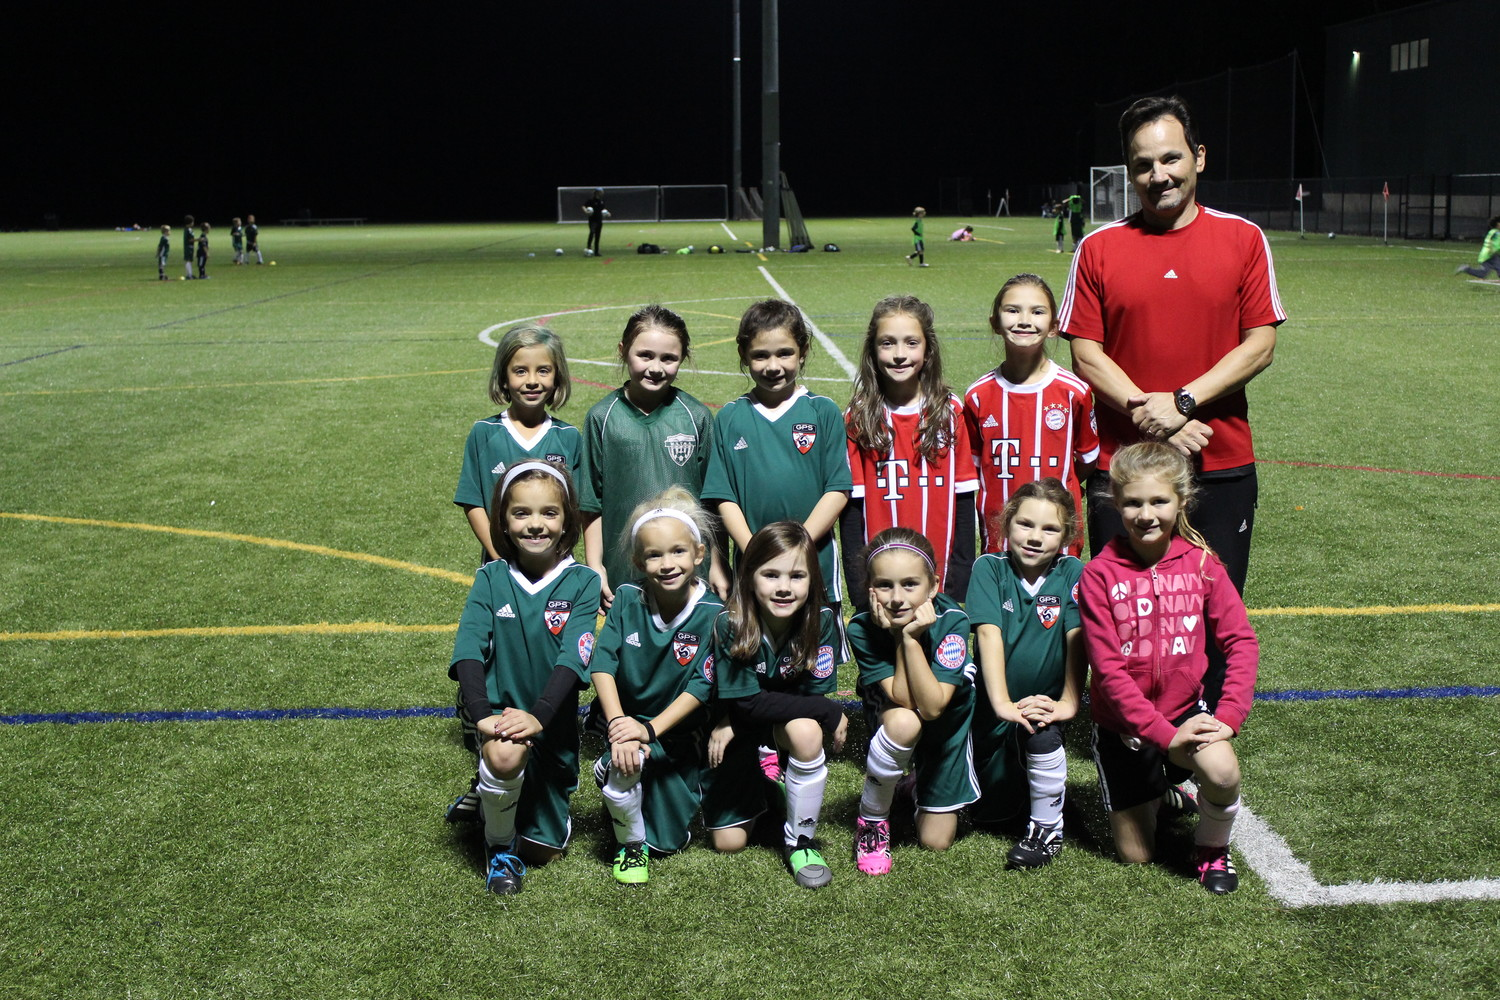 Front left to right: Sophia Dubois, Dahlia Cryan, Bailey D'Alessio, Jordyn Smith, Sadie Piasecki, Hannah Lewin